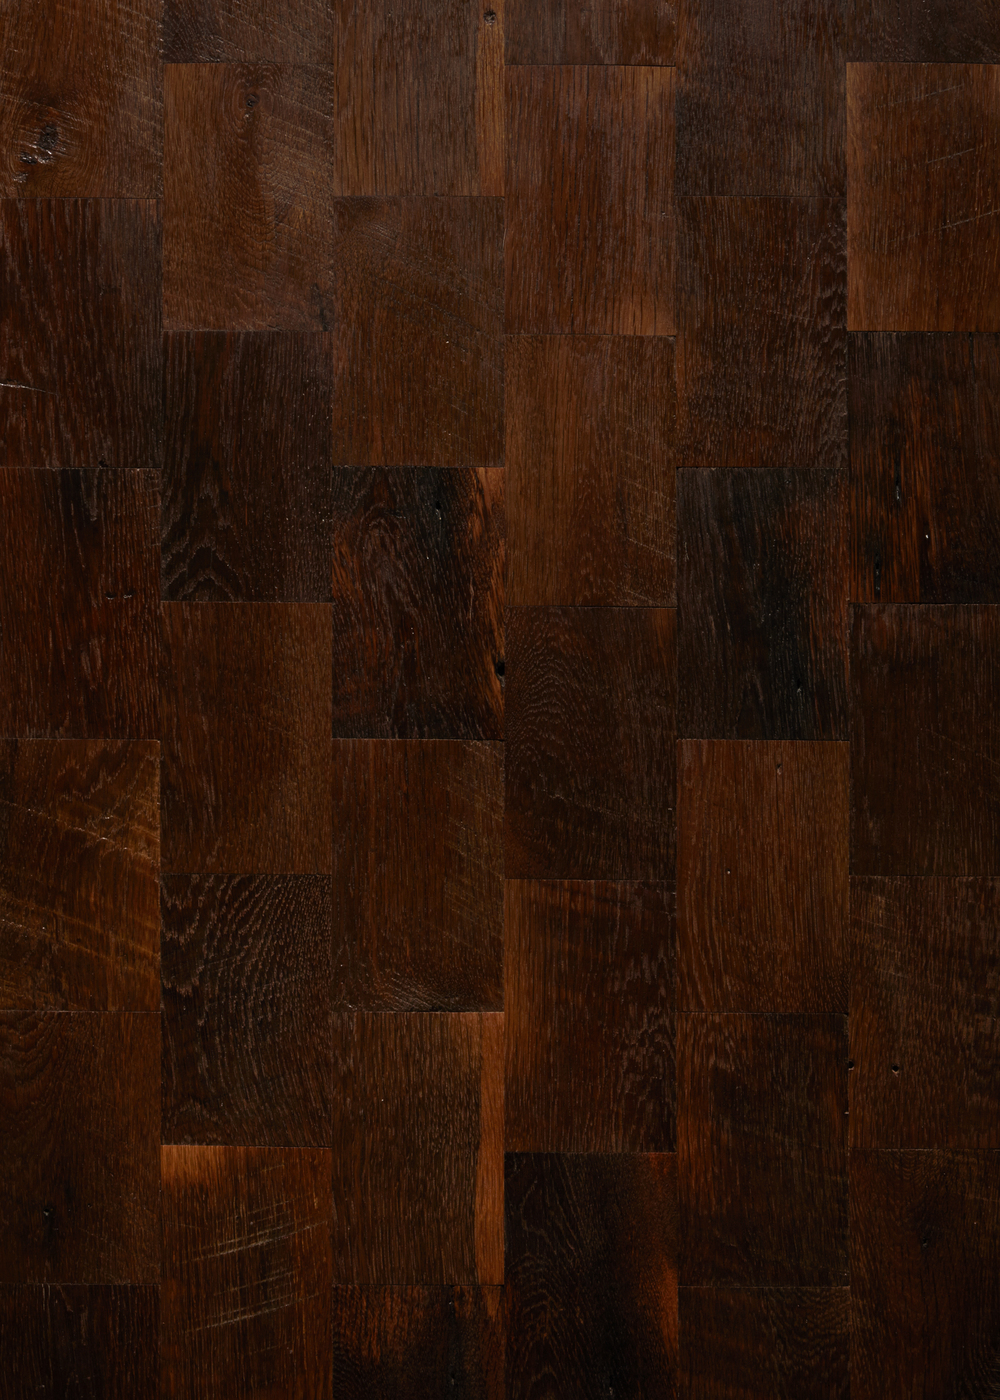 Reclaimed Mixed Oak Hardwood Flooring [Original Face, Cobbles]